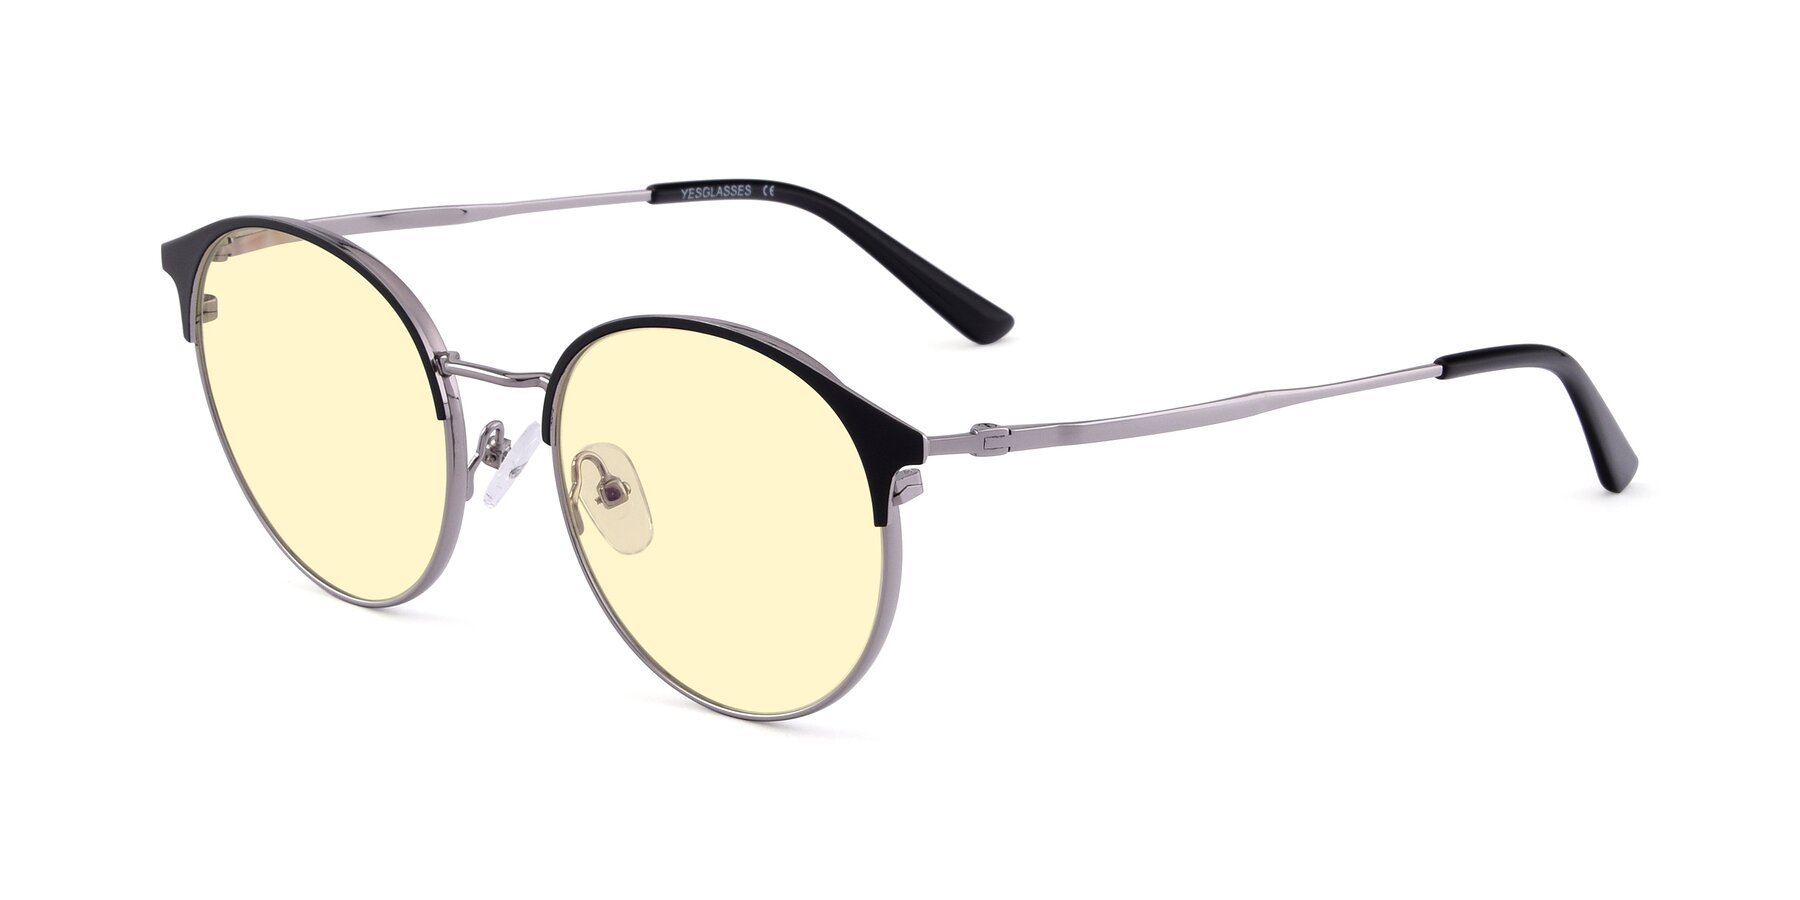 Angle of Berkley in Black-Gun with Light Yellow Tinted Lenses